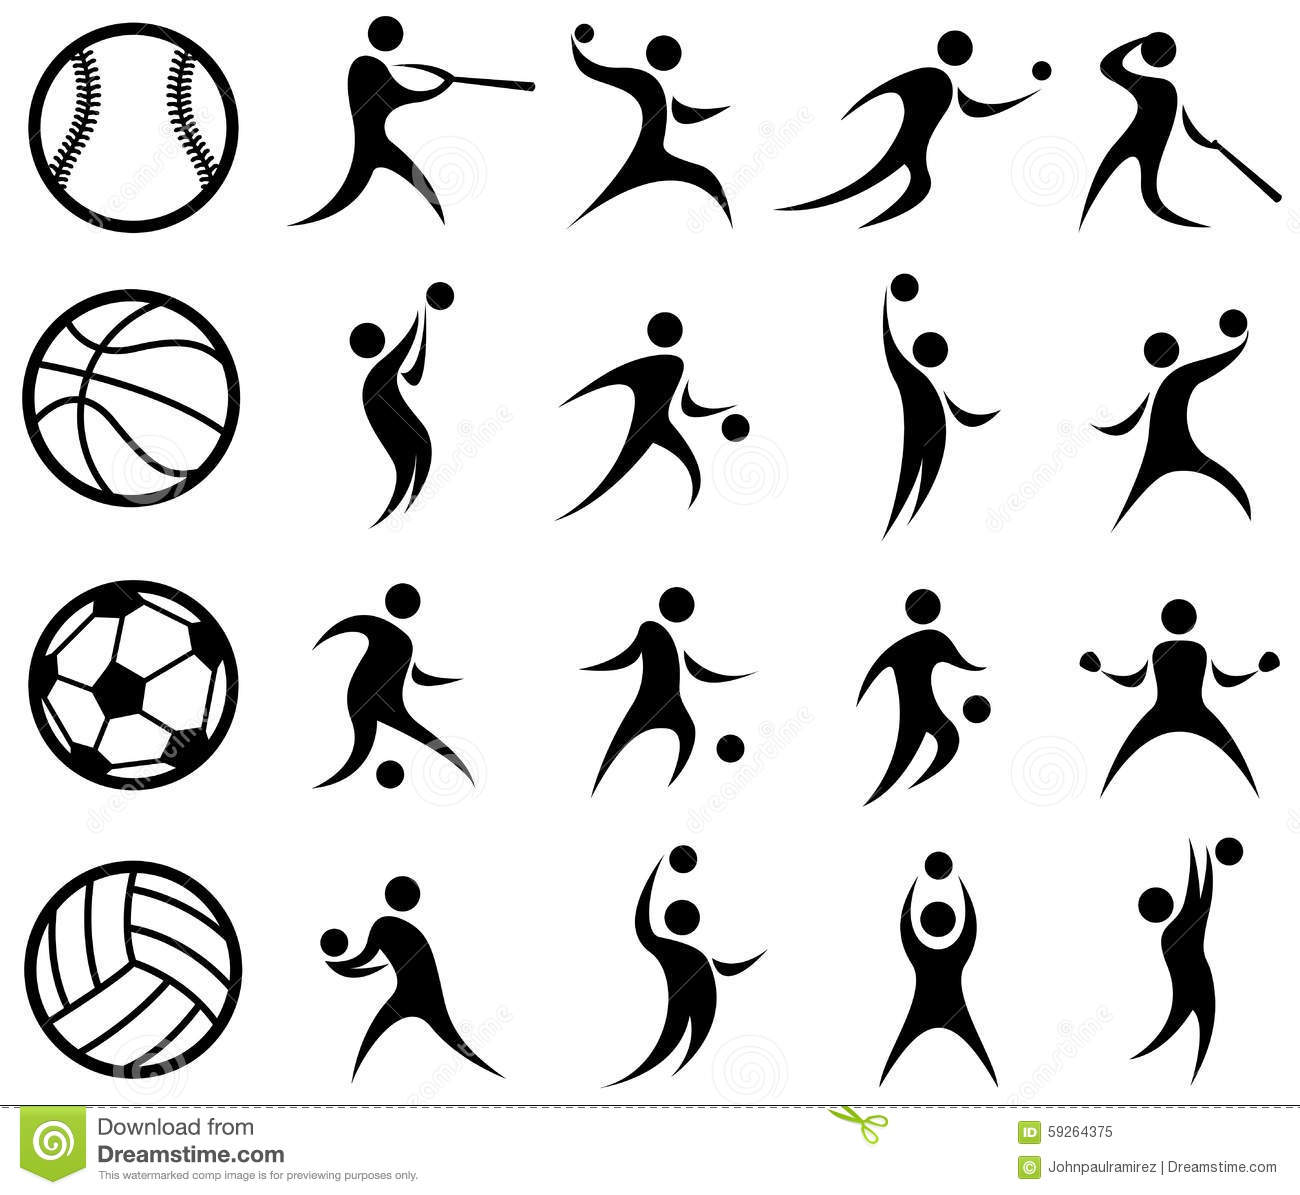 Sports Silhouette, Basketball, Baseball, Soccer